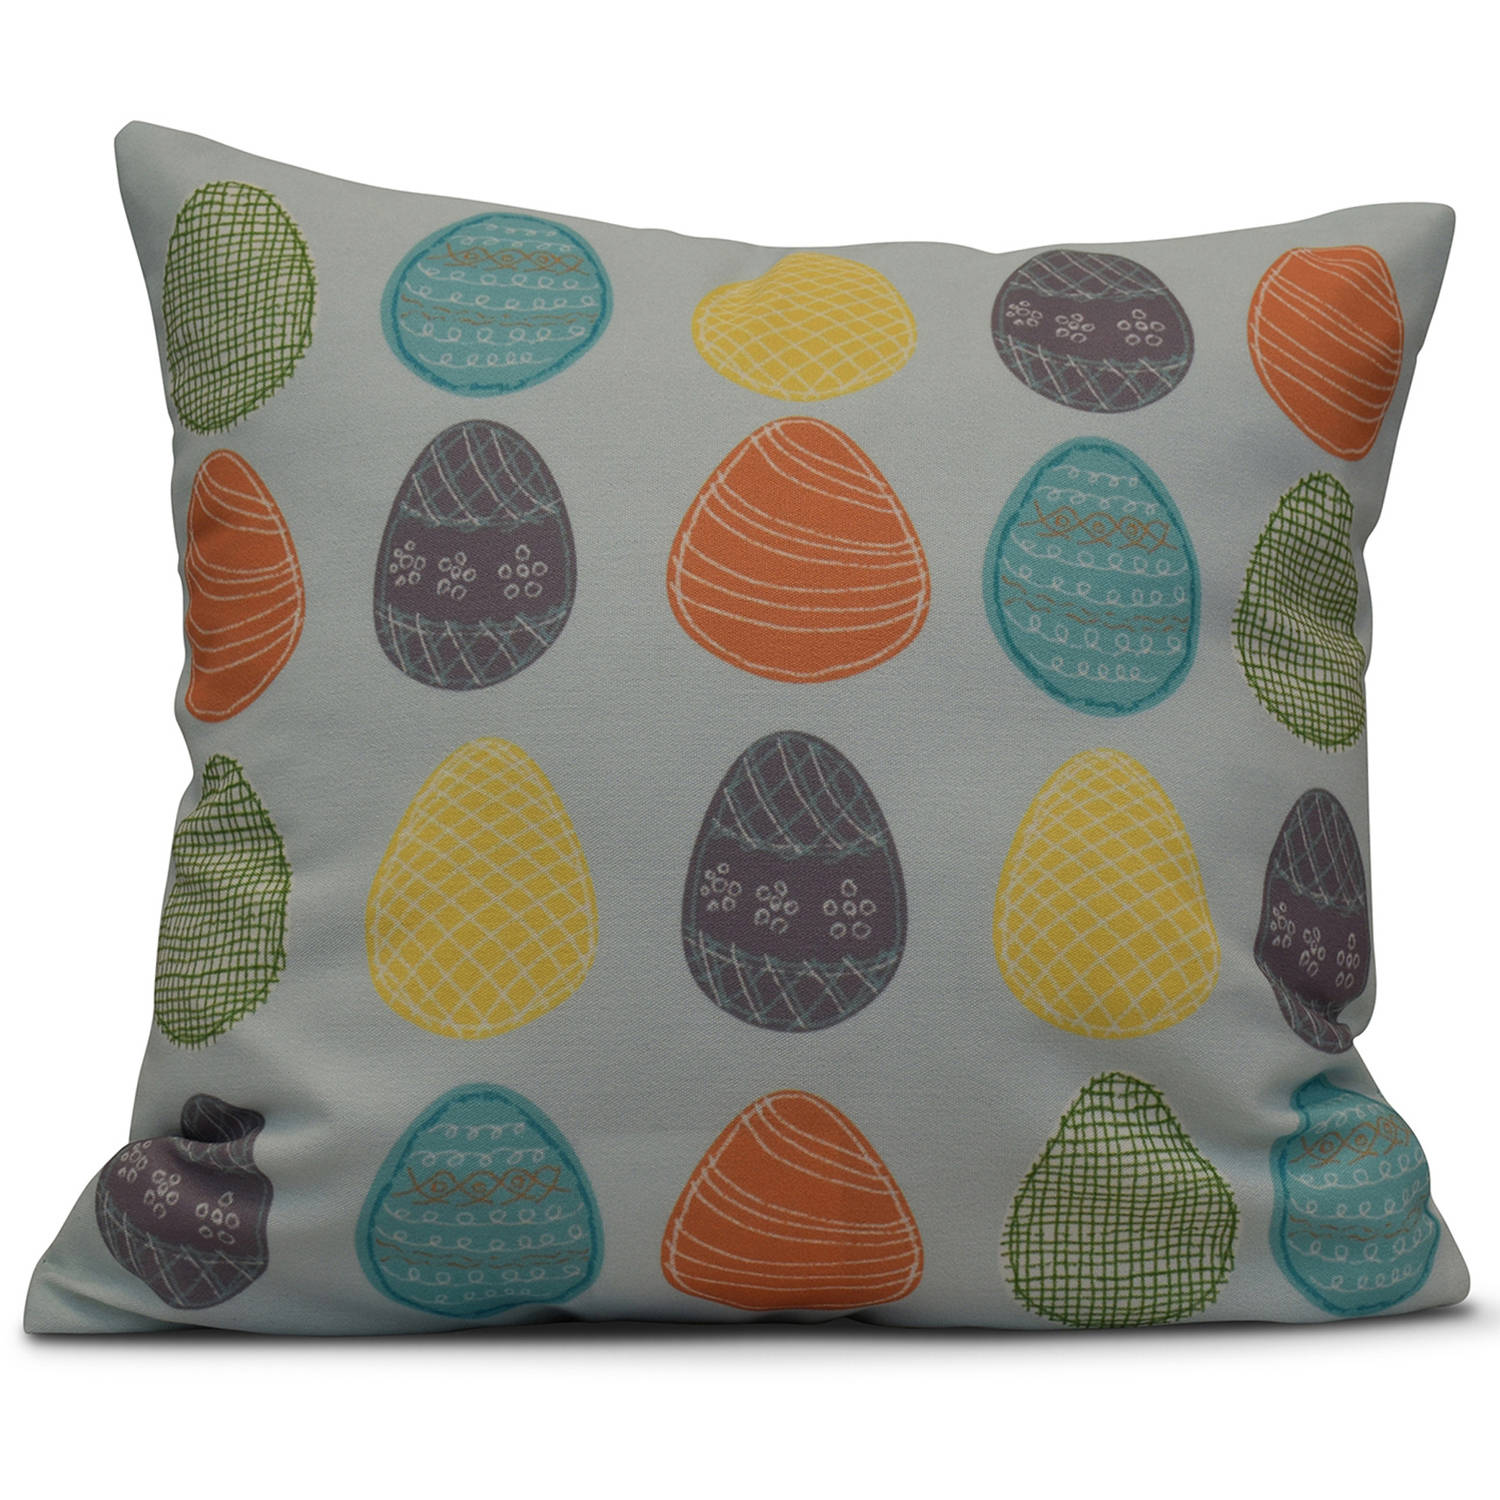 "Simply Daisy 16"" x 16"" Eggs-ellent! Holiday Geometric Print Pillow"